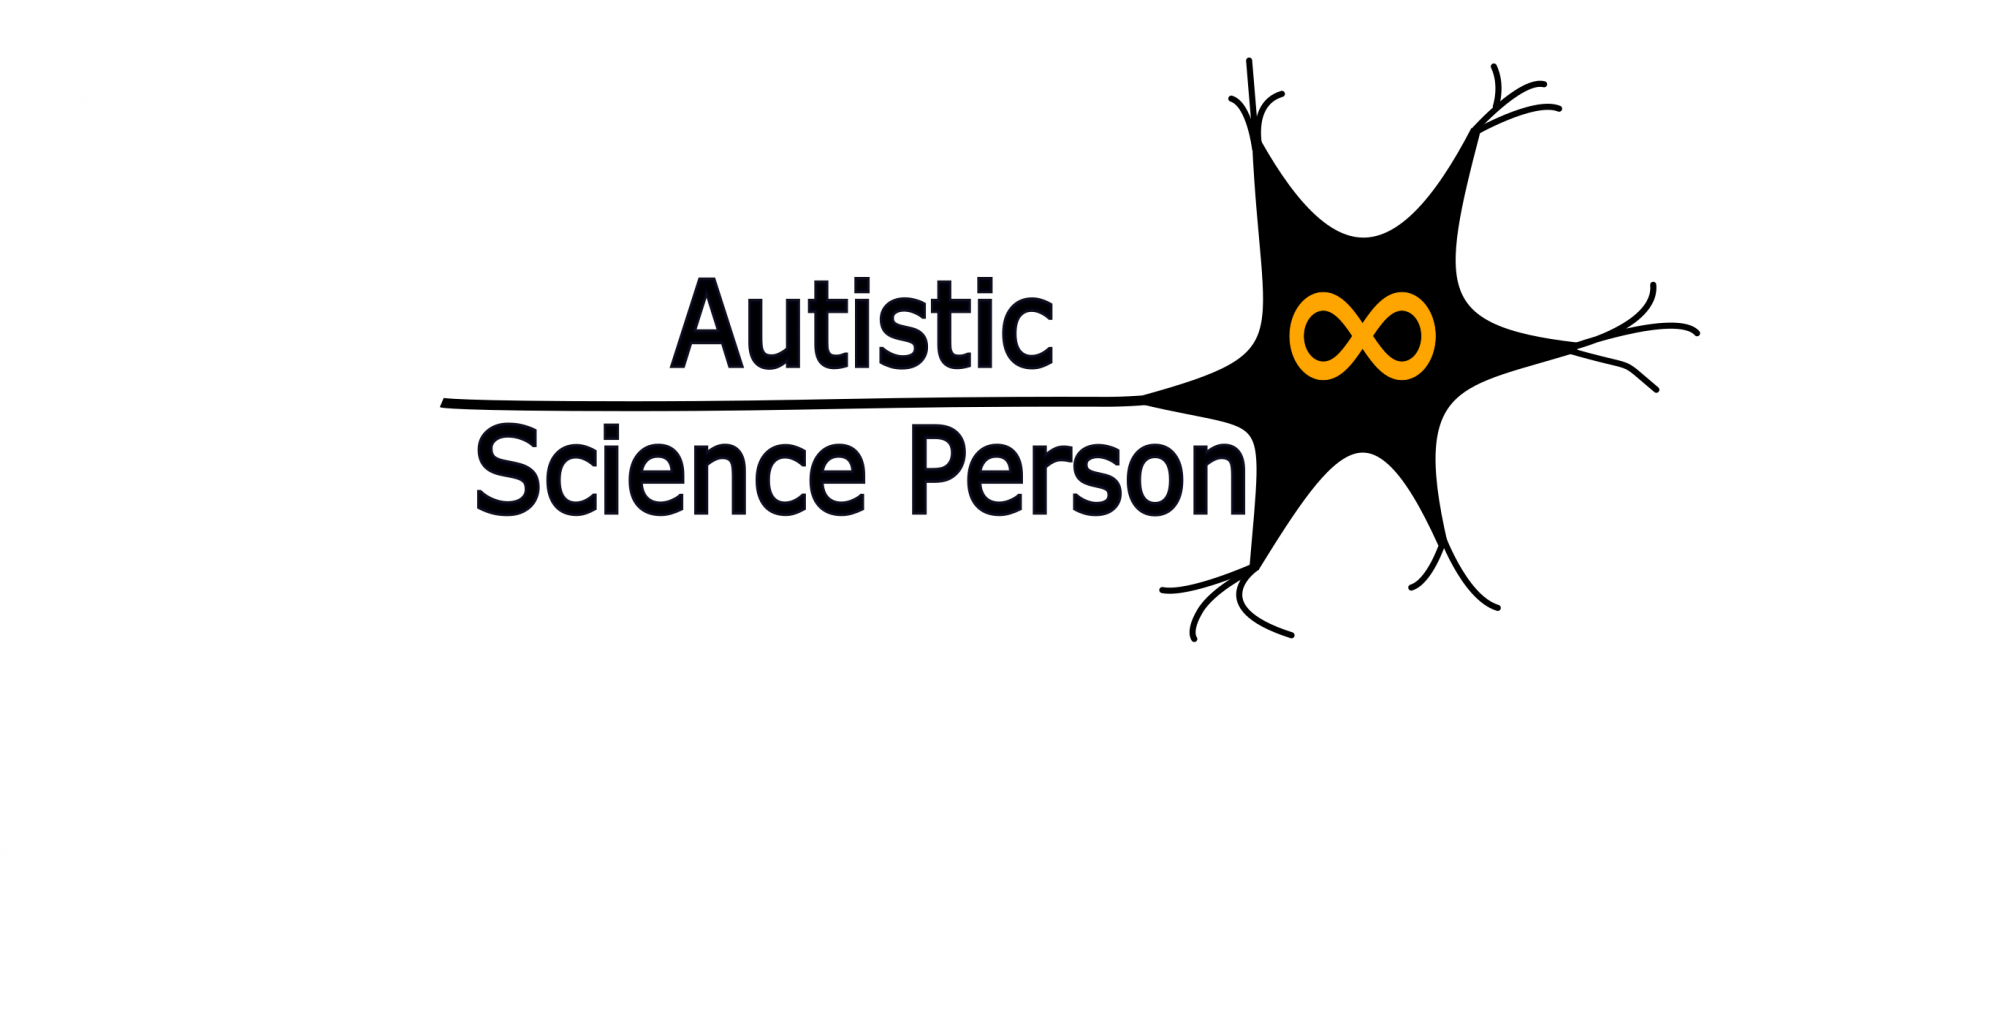 Autistic Science Person